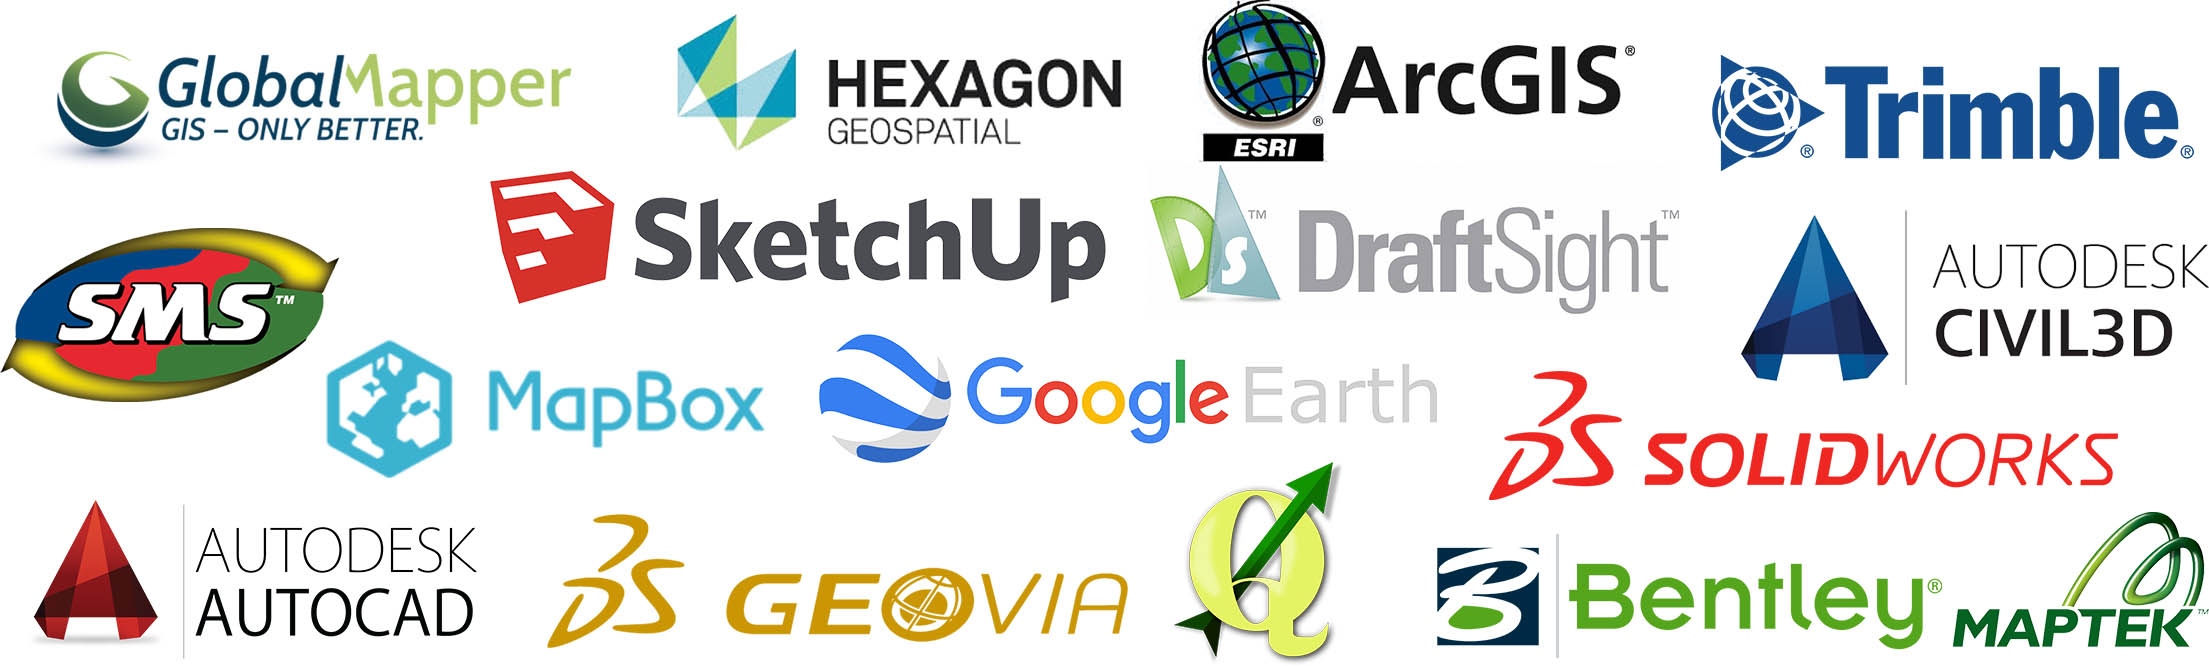 Alpinax compatible software, google, autodesk, autocad, civil3d, sketchup, sketch up, maptek, arcgis, globalmapper, global mapper, trimble.